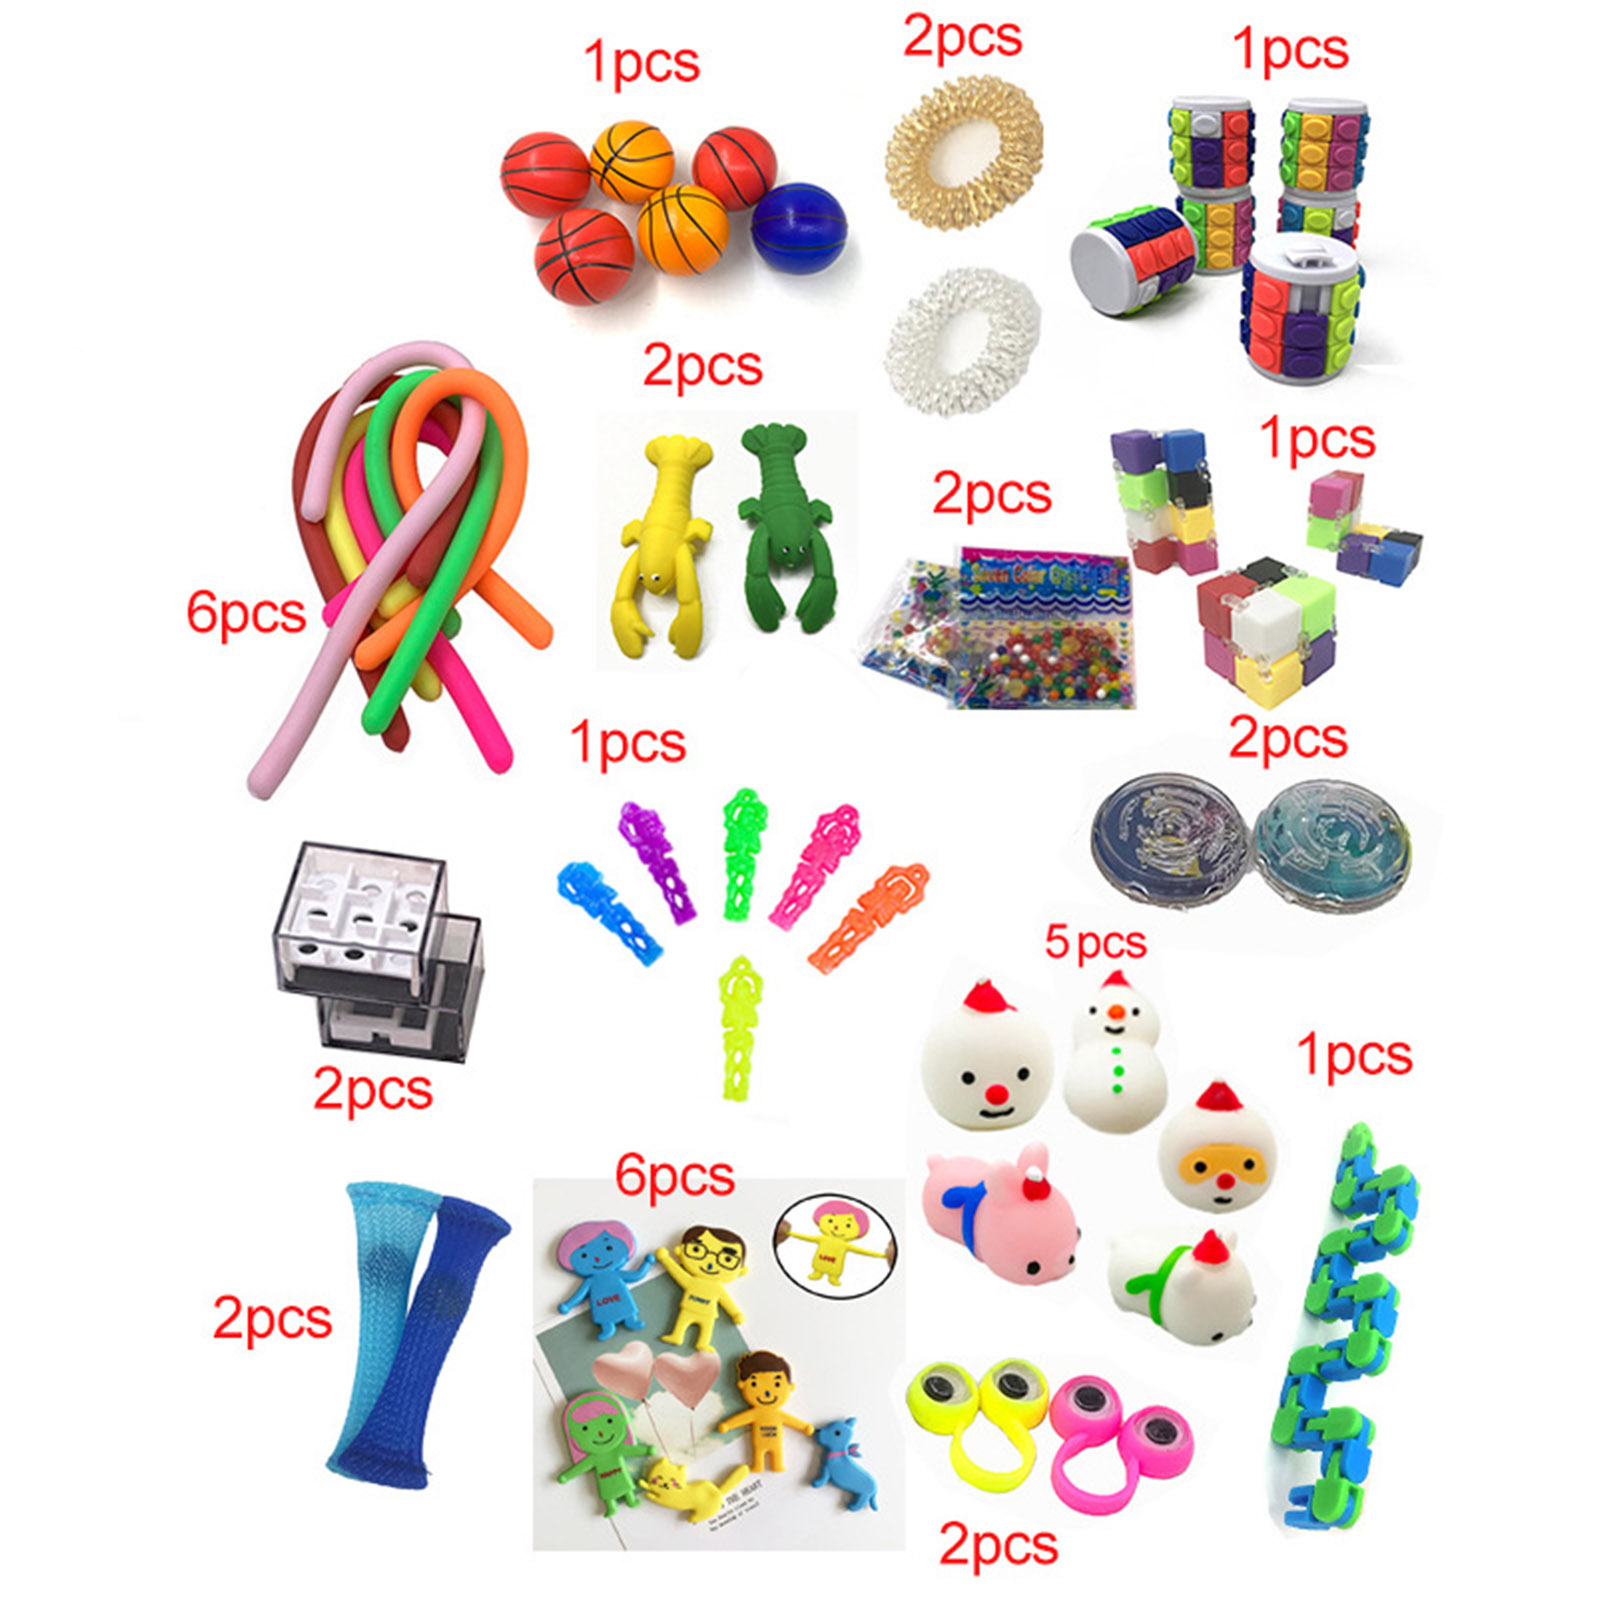 10/50Pcs Pack Sensory Fidget Toy Set Stress Relief Toys Autism Anxiety Relief Stress img5